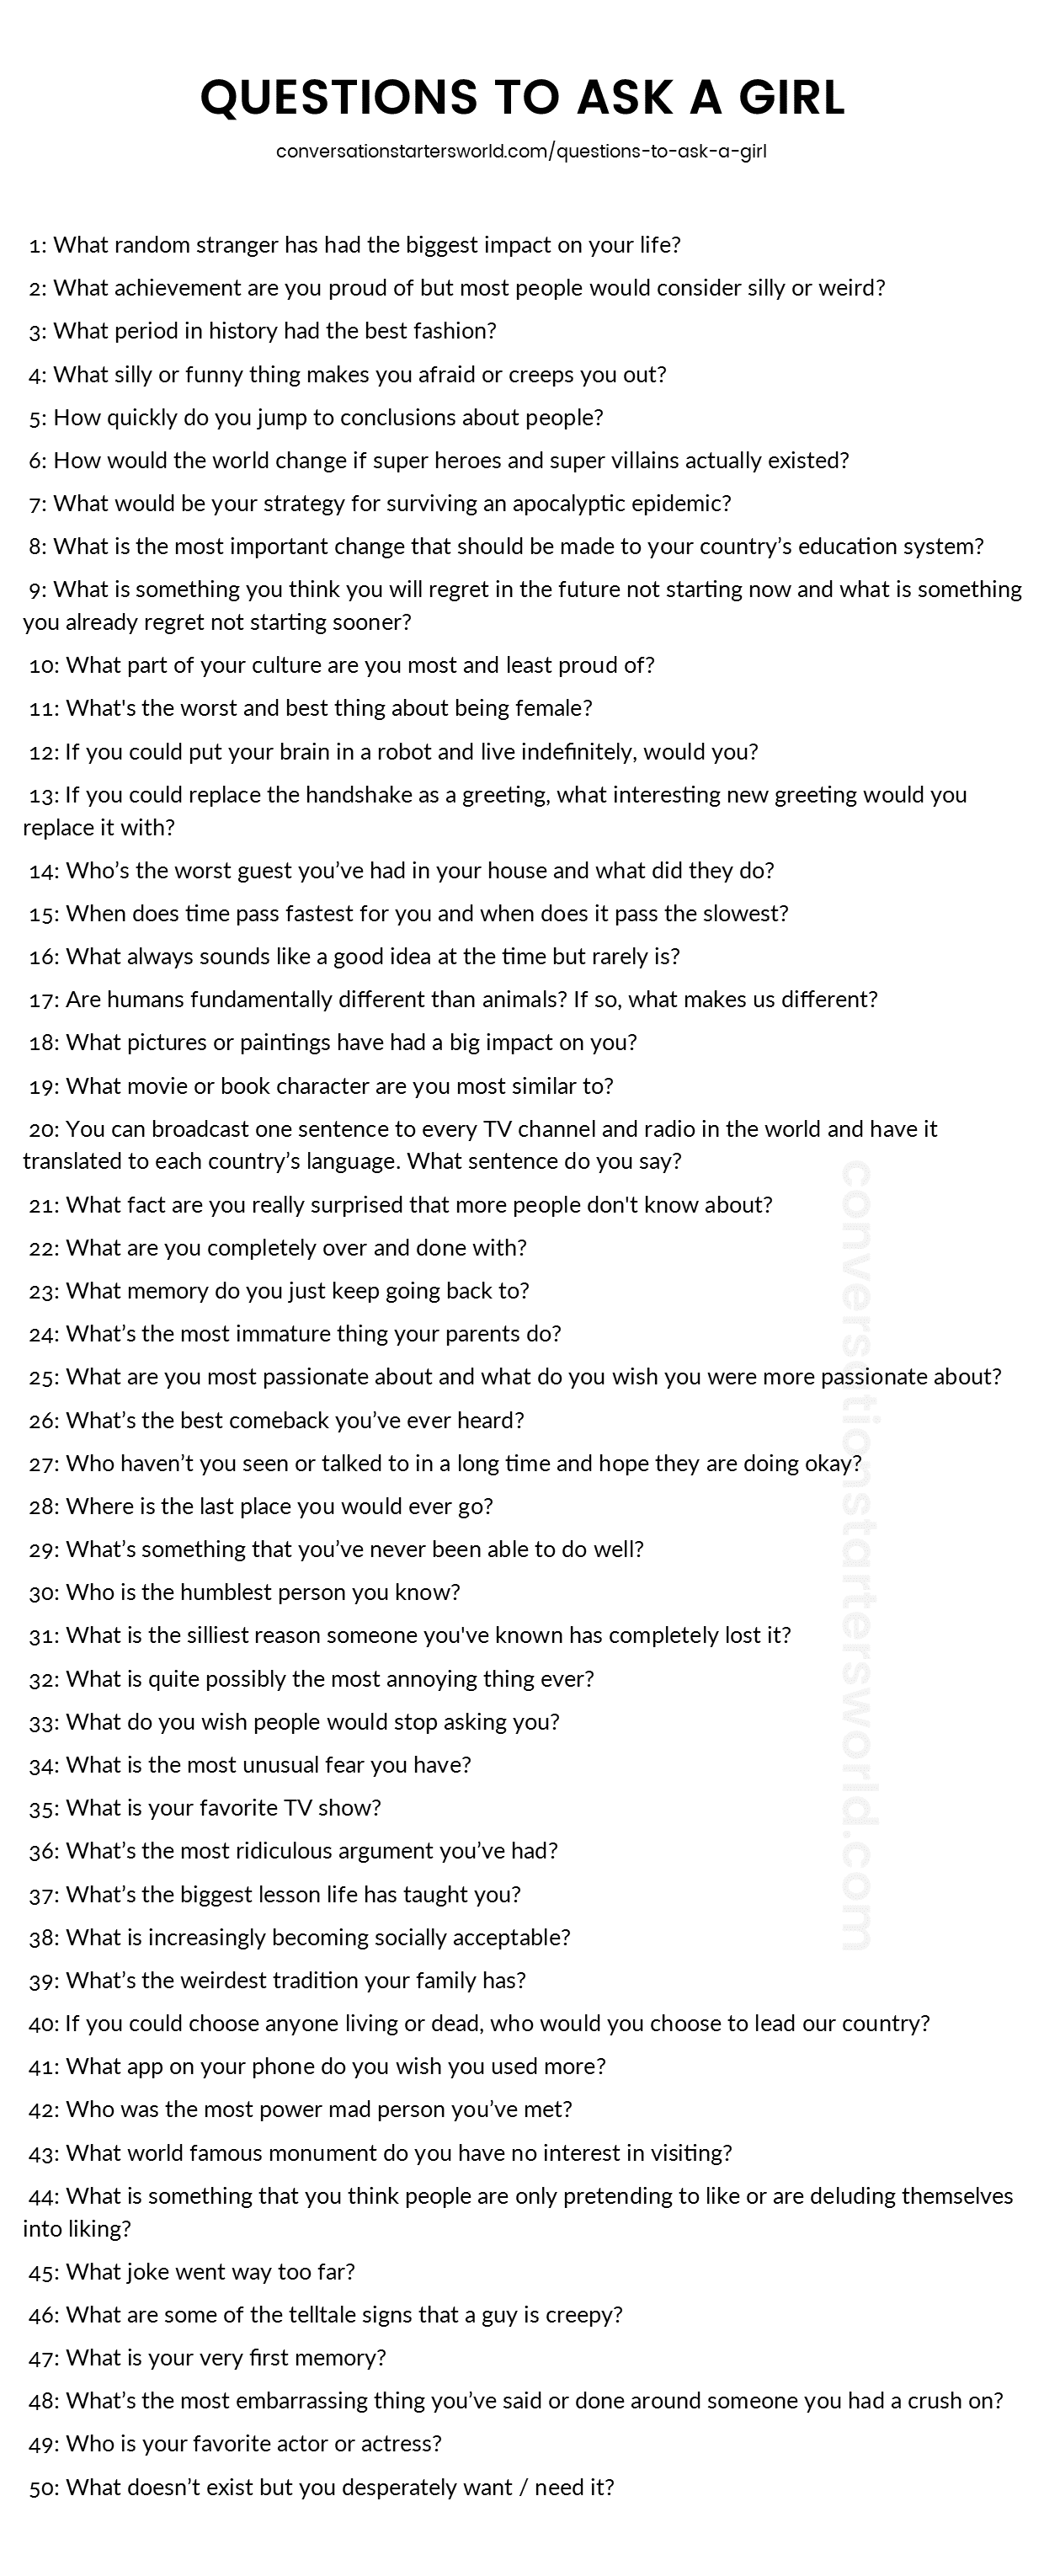 200 Questions To Ask A Girl - The Only List Youll Need-7318